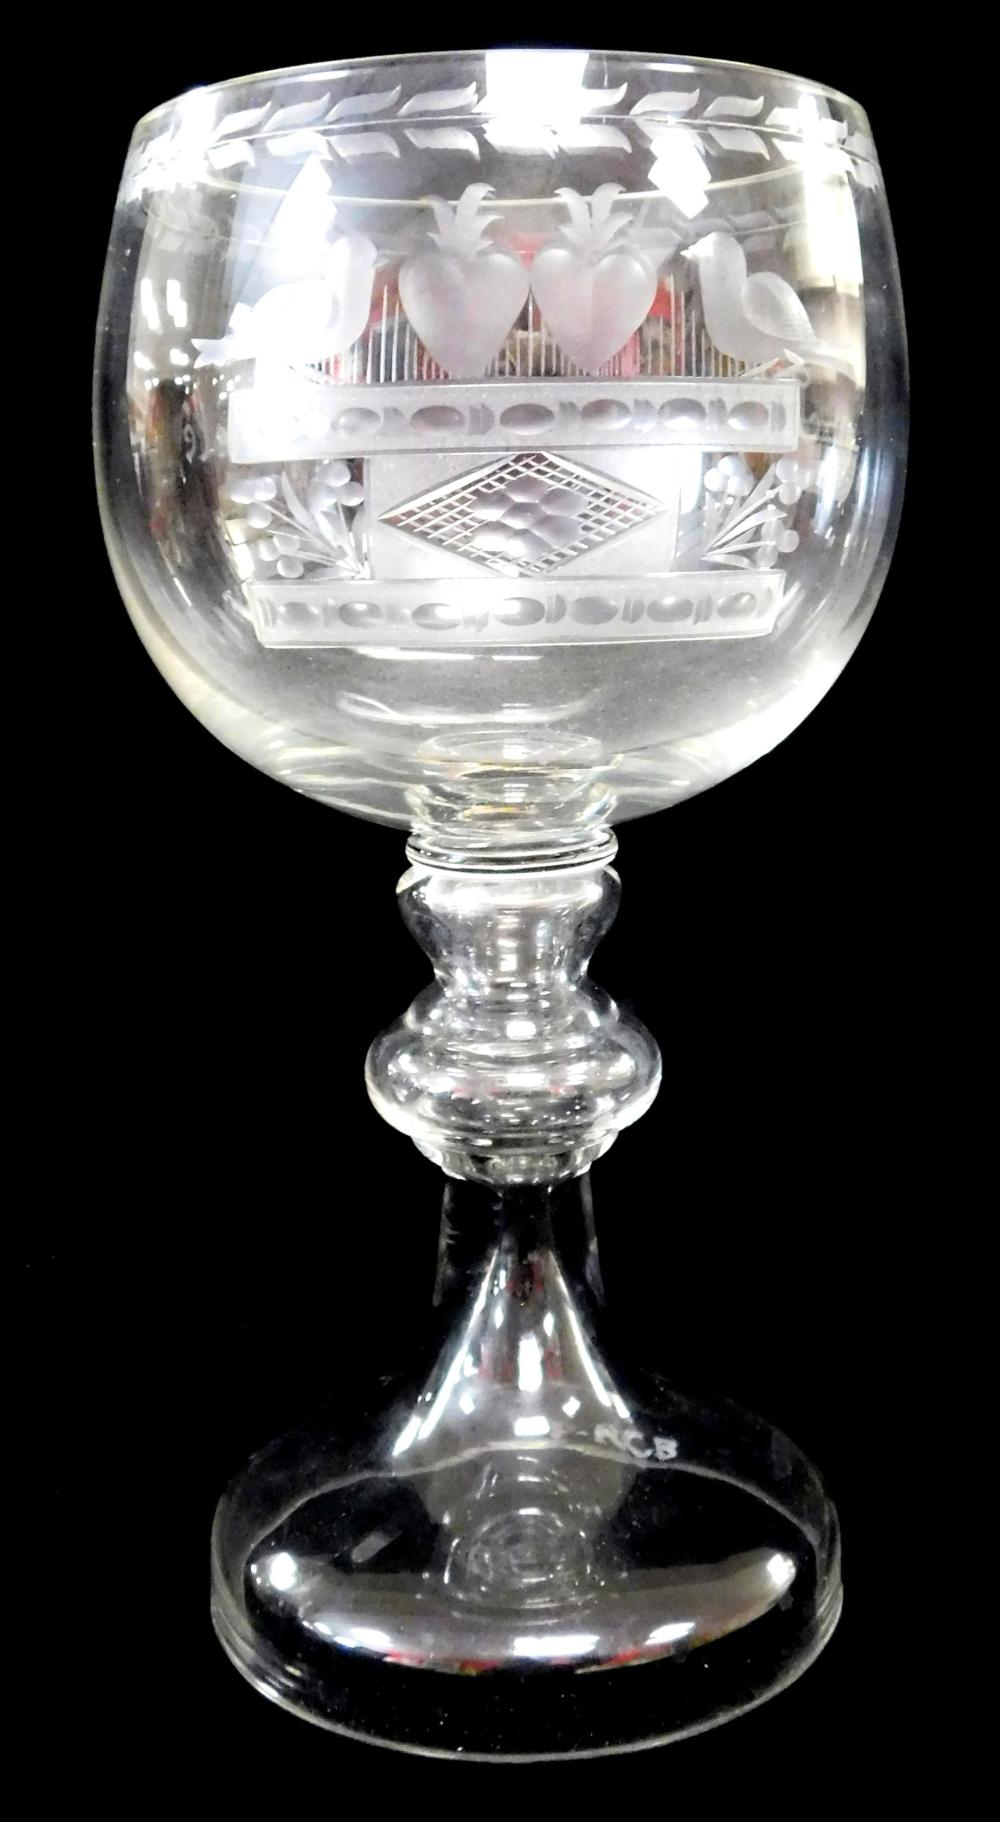 Steuben, Tiffany & Co., Cassini, etc., seven pieces of fine glass, including: large Steuben teardrop shaped vase with rolled rim, si...